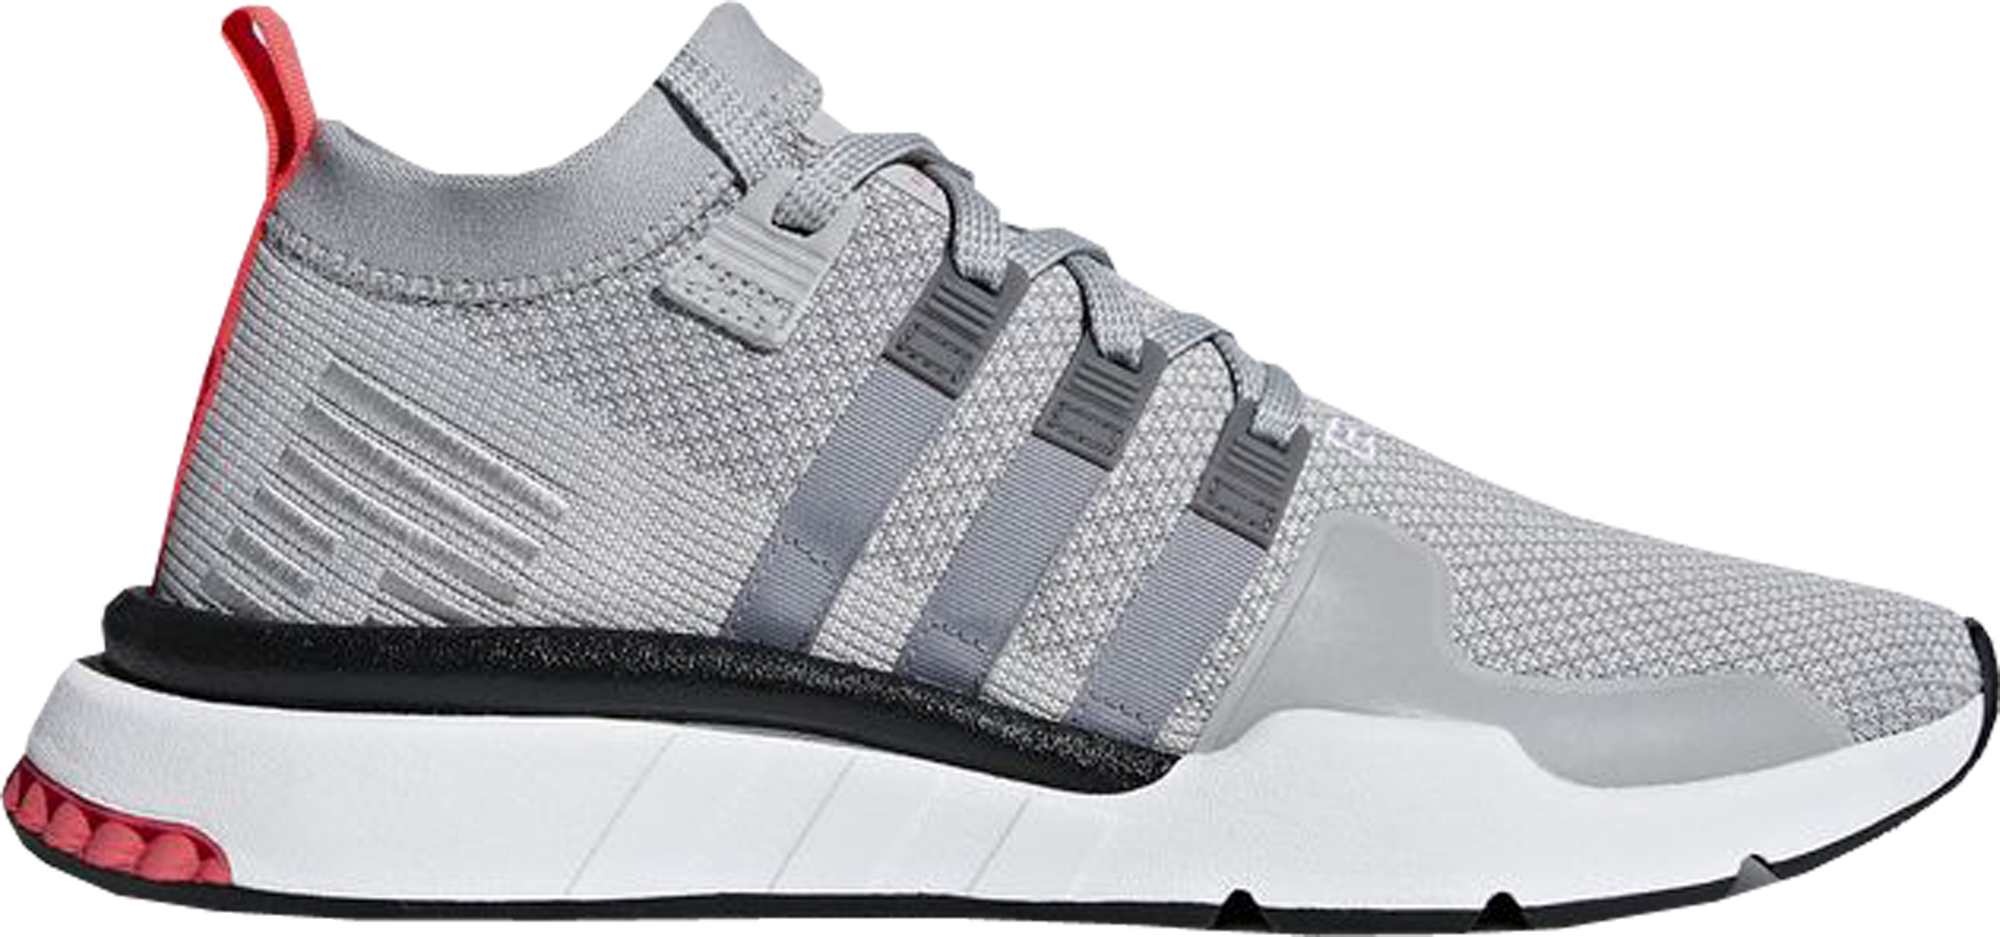 adidas EQT Support Mid Adv Grey Two Core Black